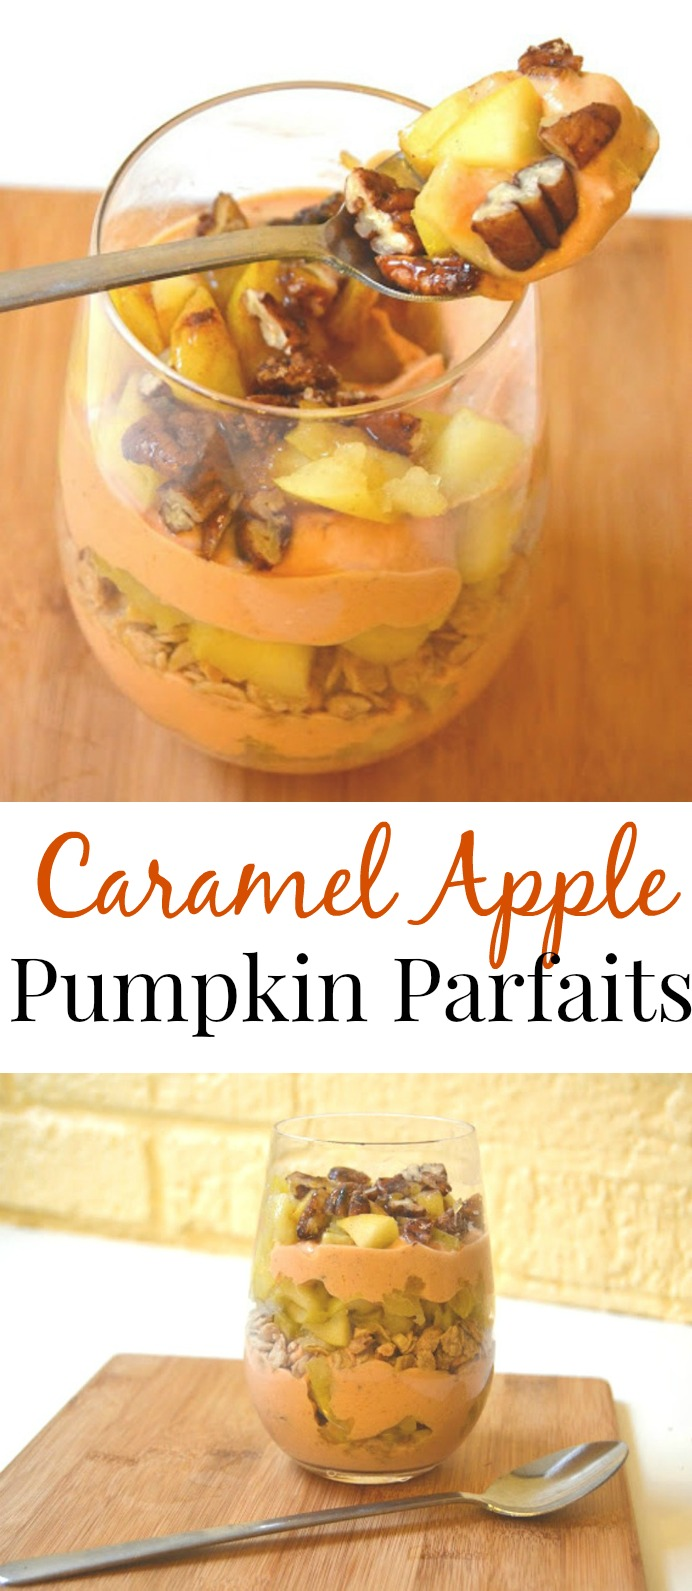 This delicious caramel apple pumpkin parfait is easy to make and full of fall flavors! Filled with fresh apples, pecans, pumpkin yogurt, granola and caramel sauce. www.nutritionistreviews.com